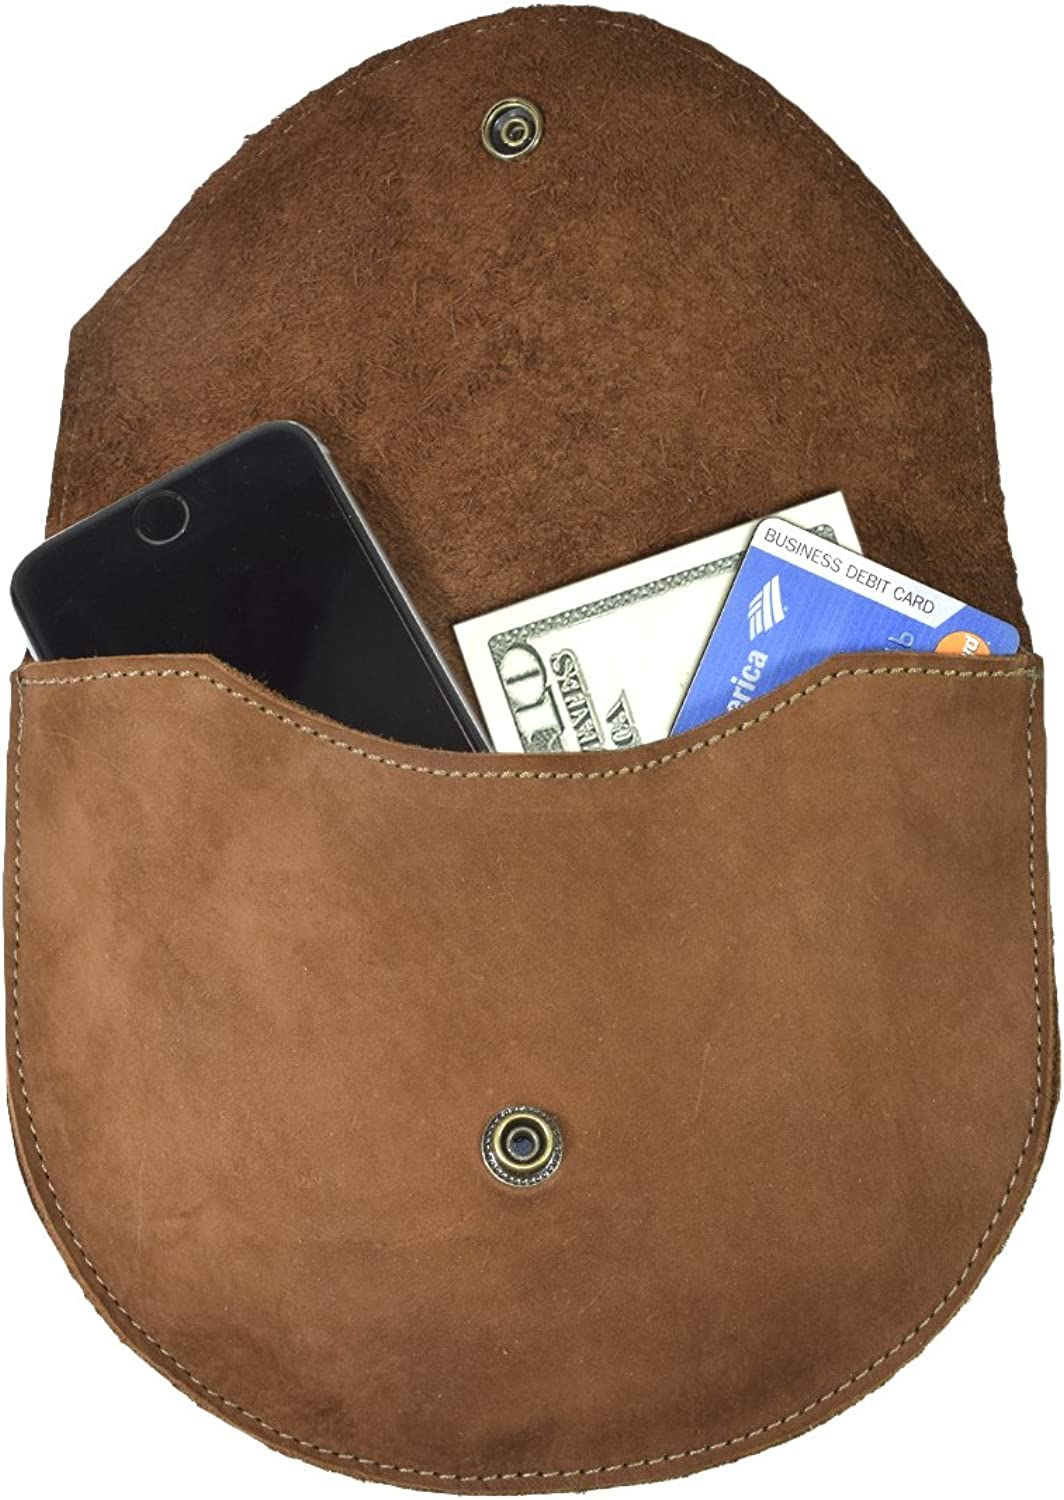 Hide & Drink Durable Leather Two in One Hip and Shoulder Bag Handmade Swayze Suede Brown